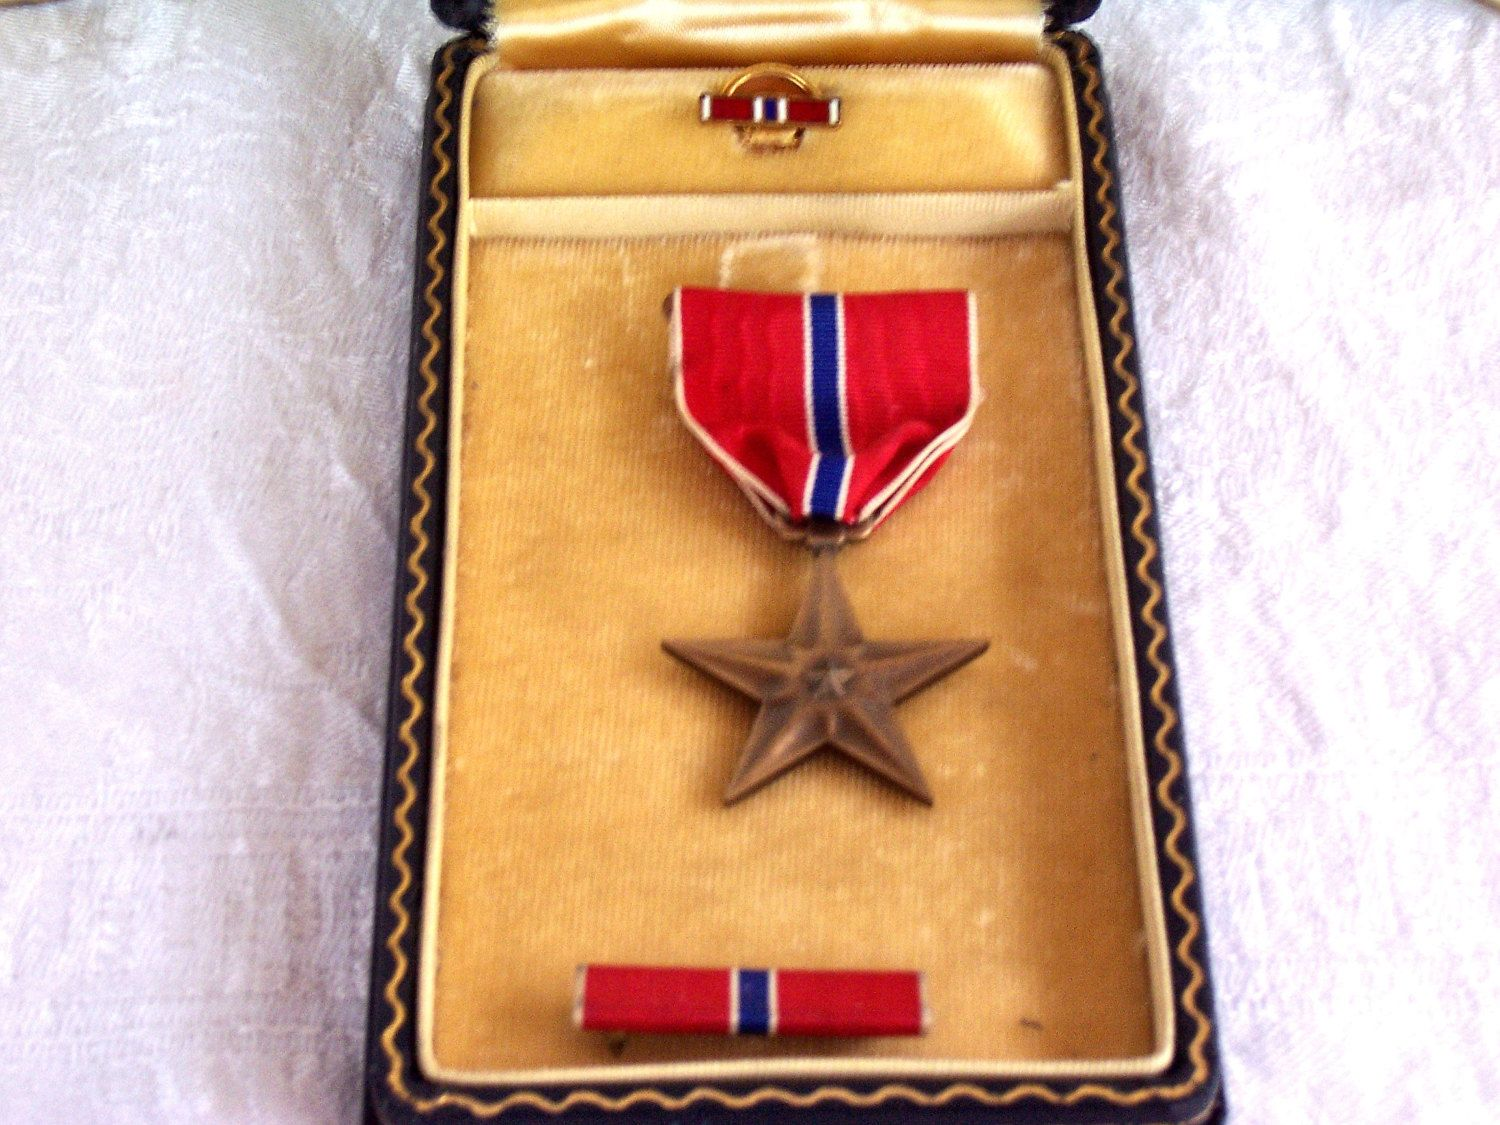 Case Blue Ww2 : Us air medal ww in case with miniature